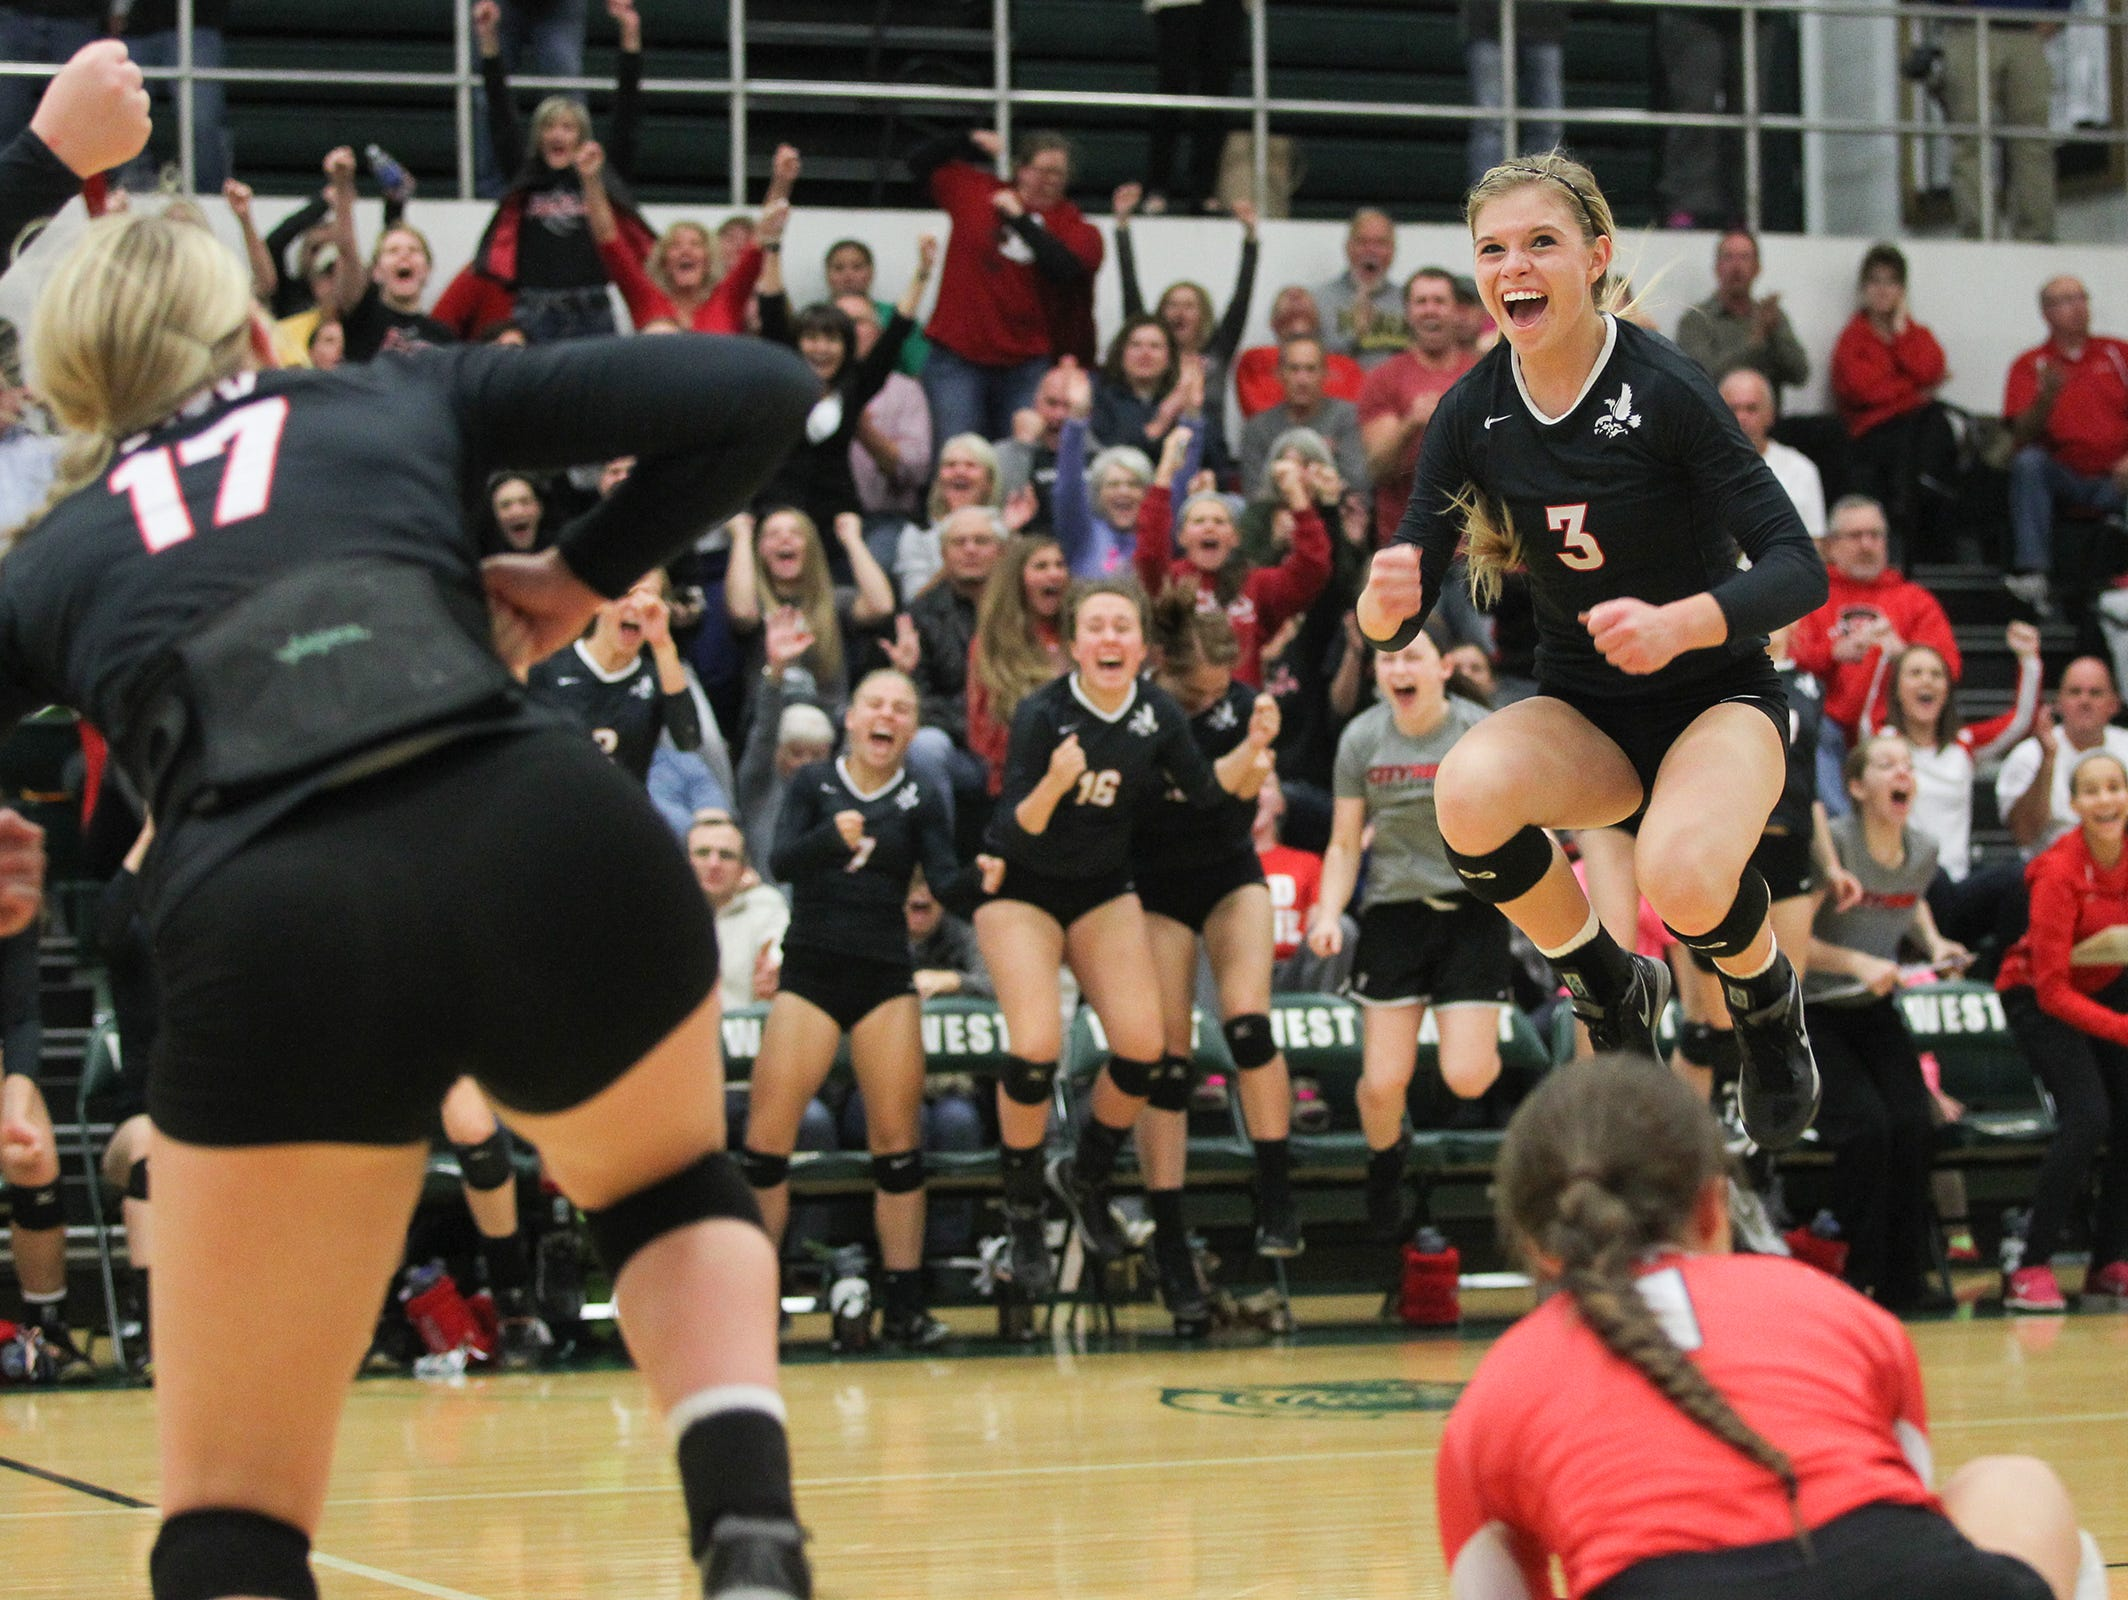 City High's Alexa Aldrich-Ingram celebrates a point during the Little Hawks' regional semifinal game at West High on Thursday, Oct. 29, 2015.